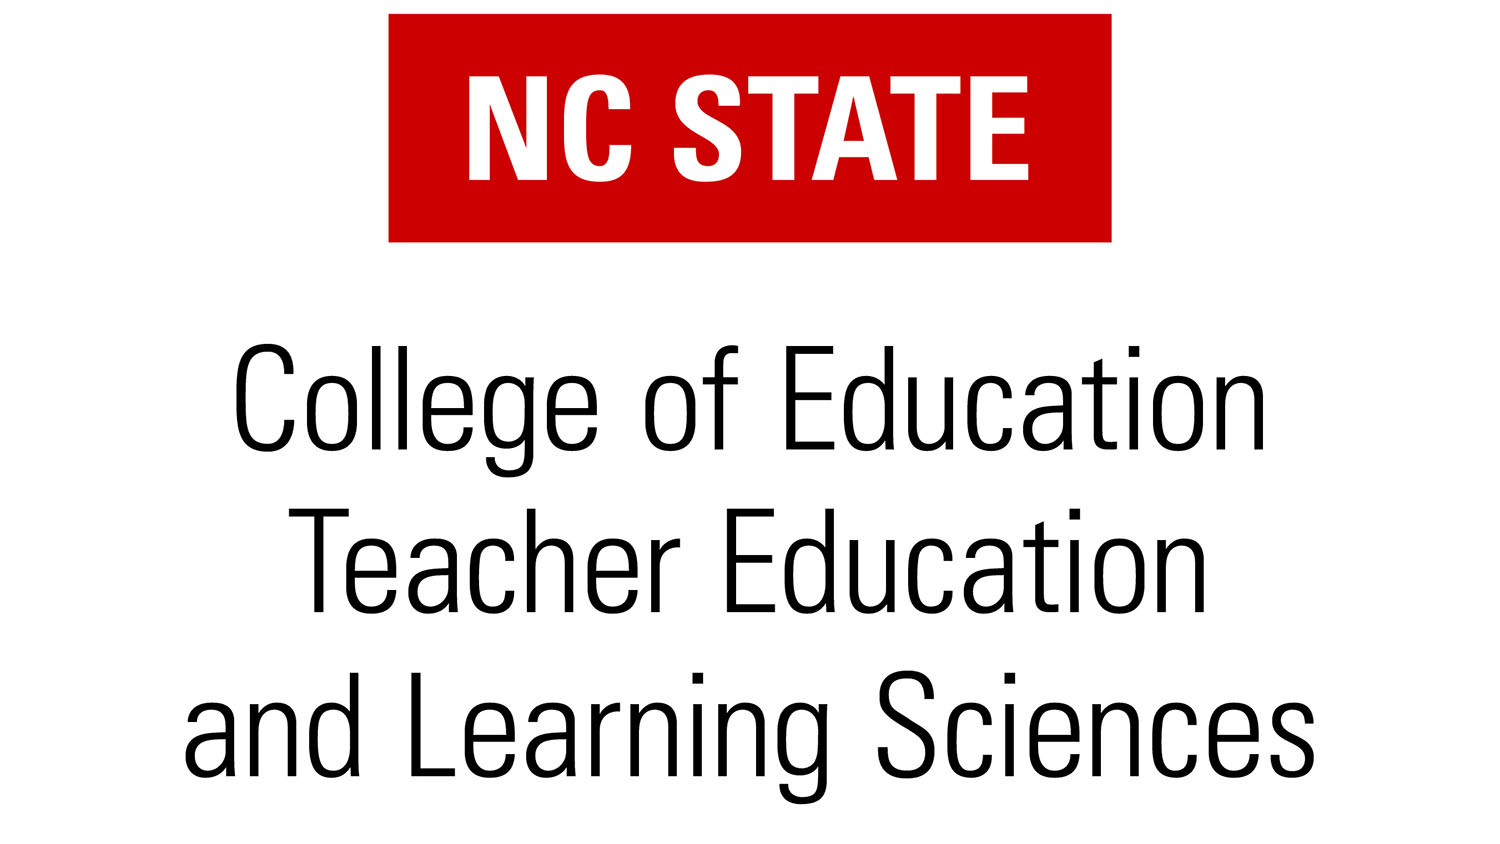 Teacher Education and Learning Sciences